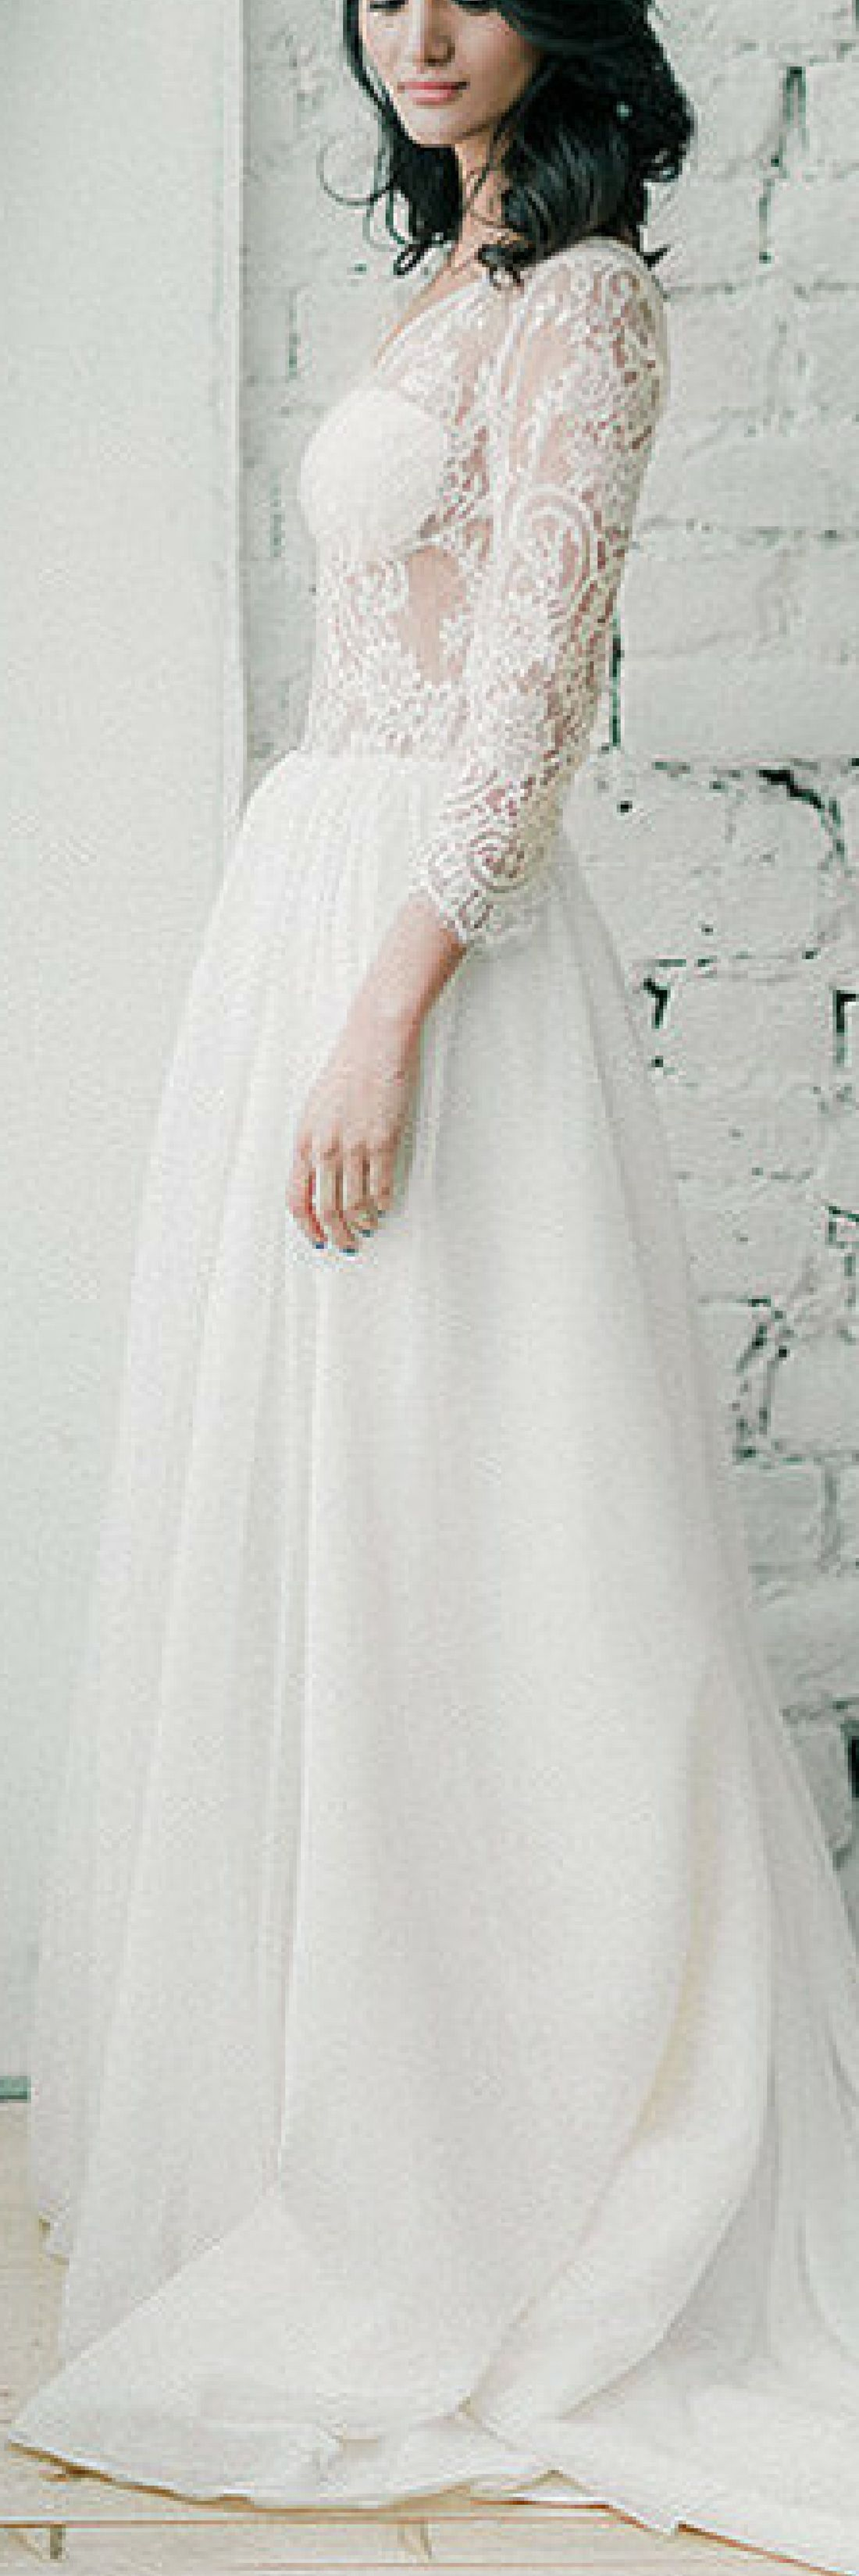 Where to find long sleeve wedding dresses  Tasmin  Long sleeve wedding dress  Bohemian wedding dress